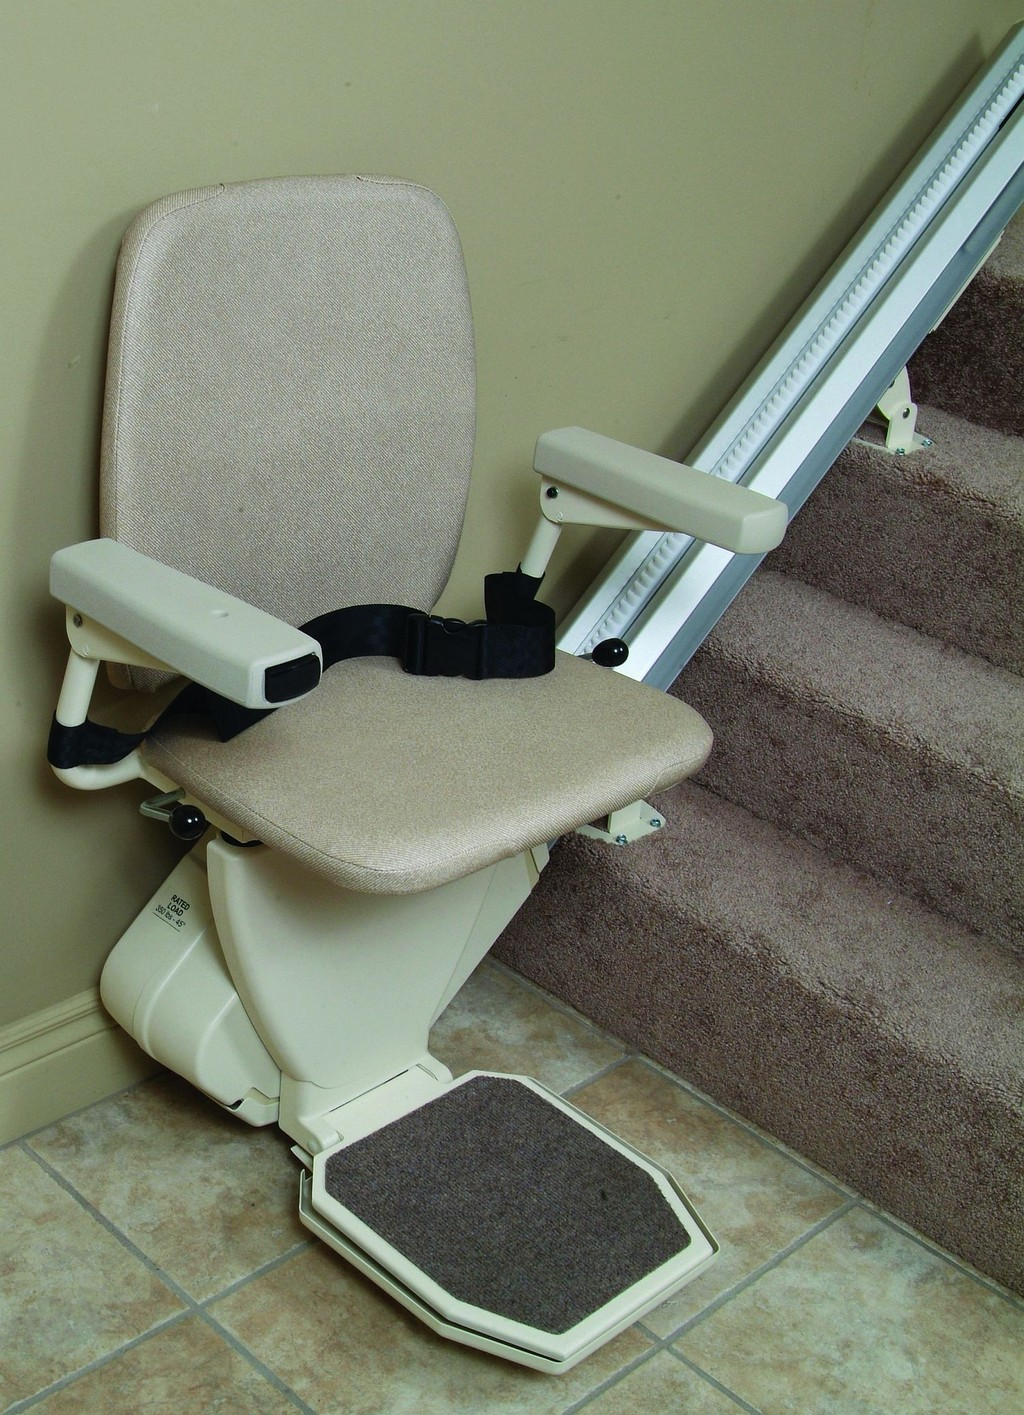 summit stairlift, stair lift, acorn stair lift price, stair chair lift providers in cincinnati ohio